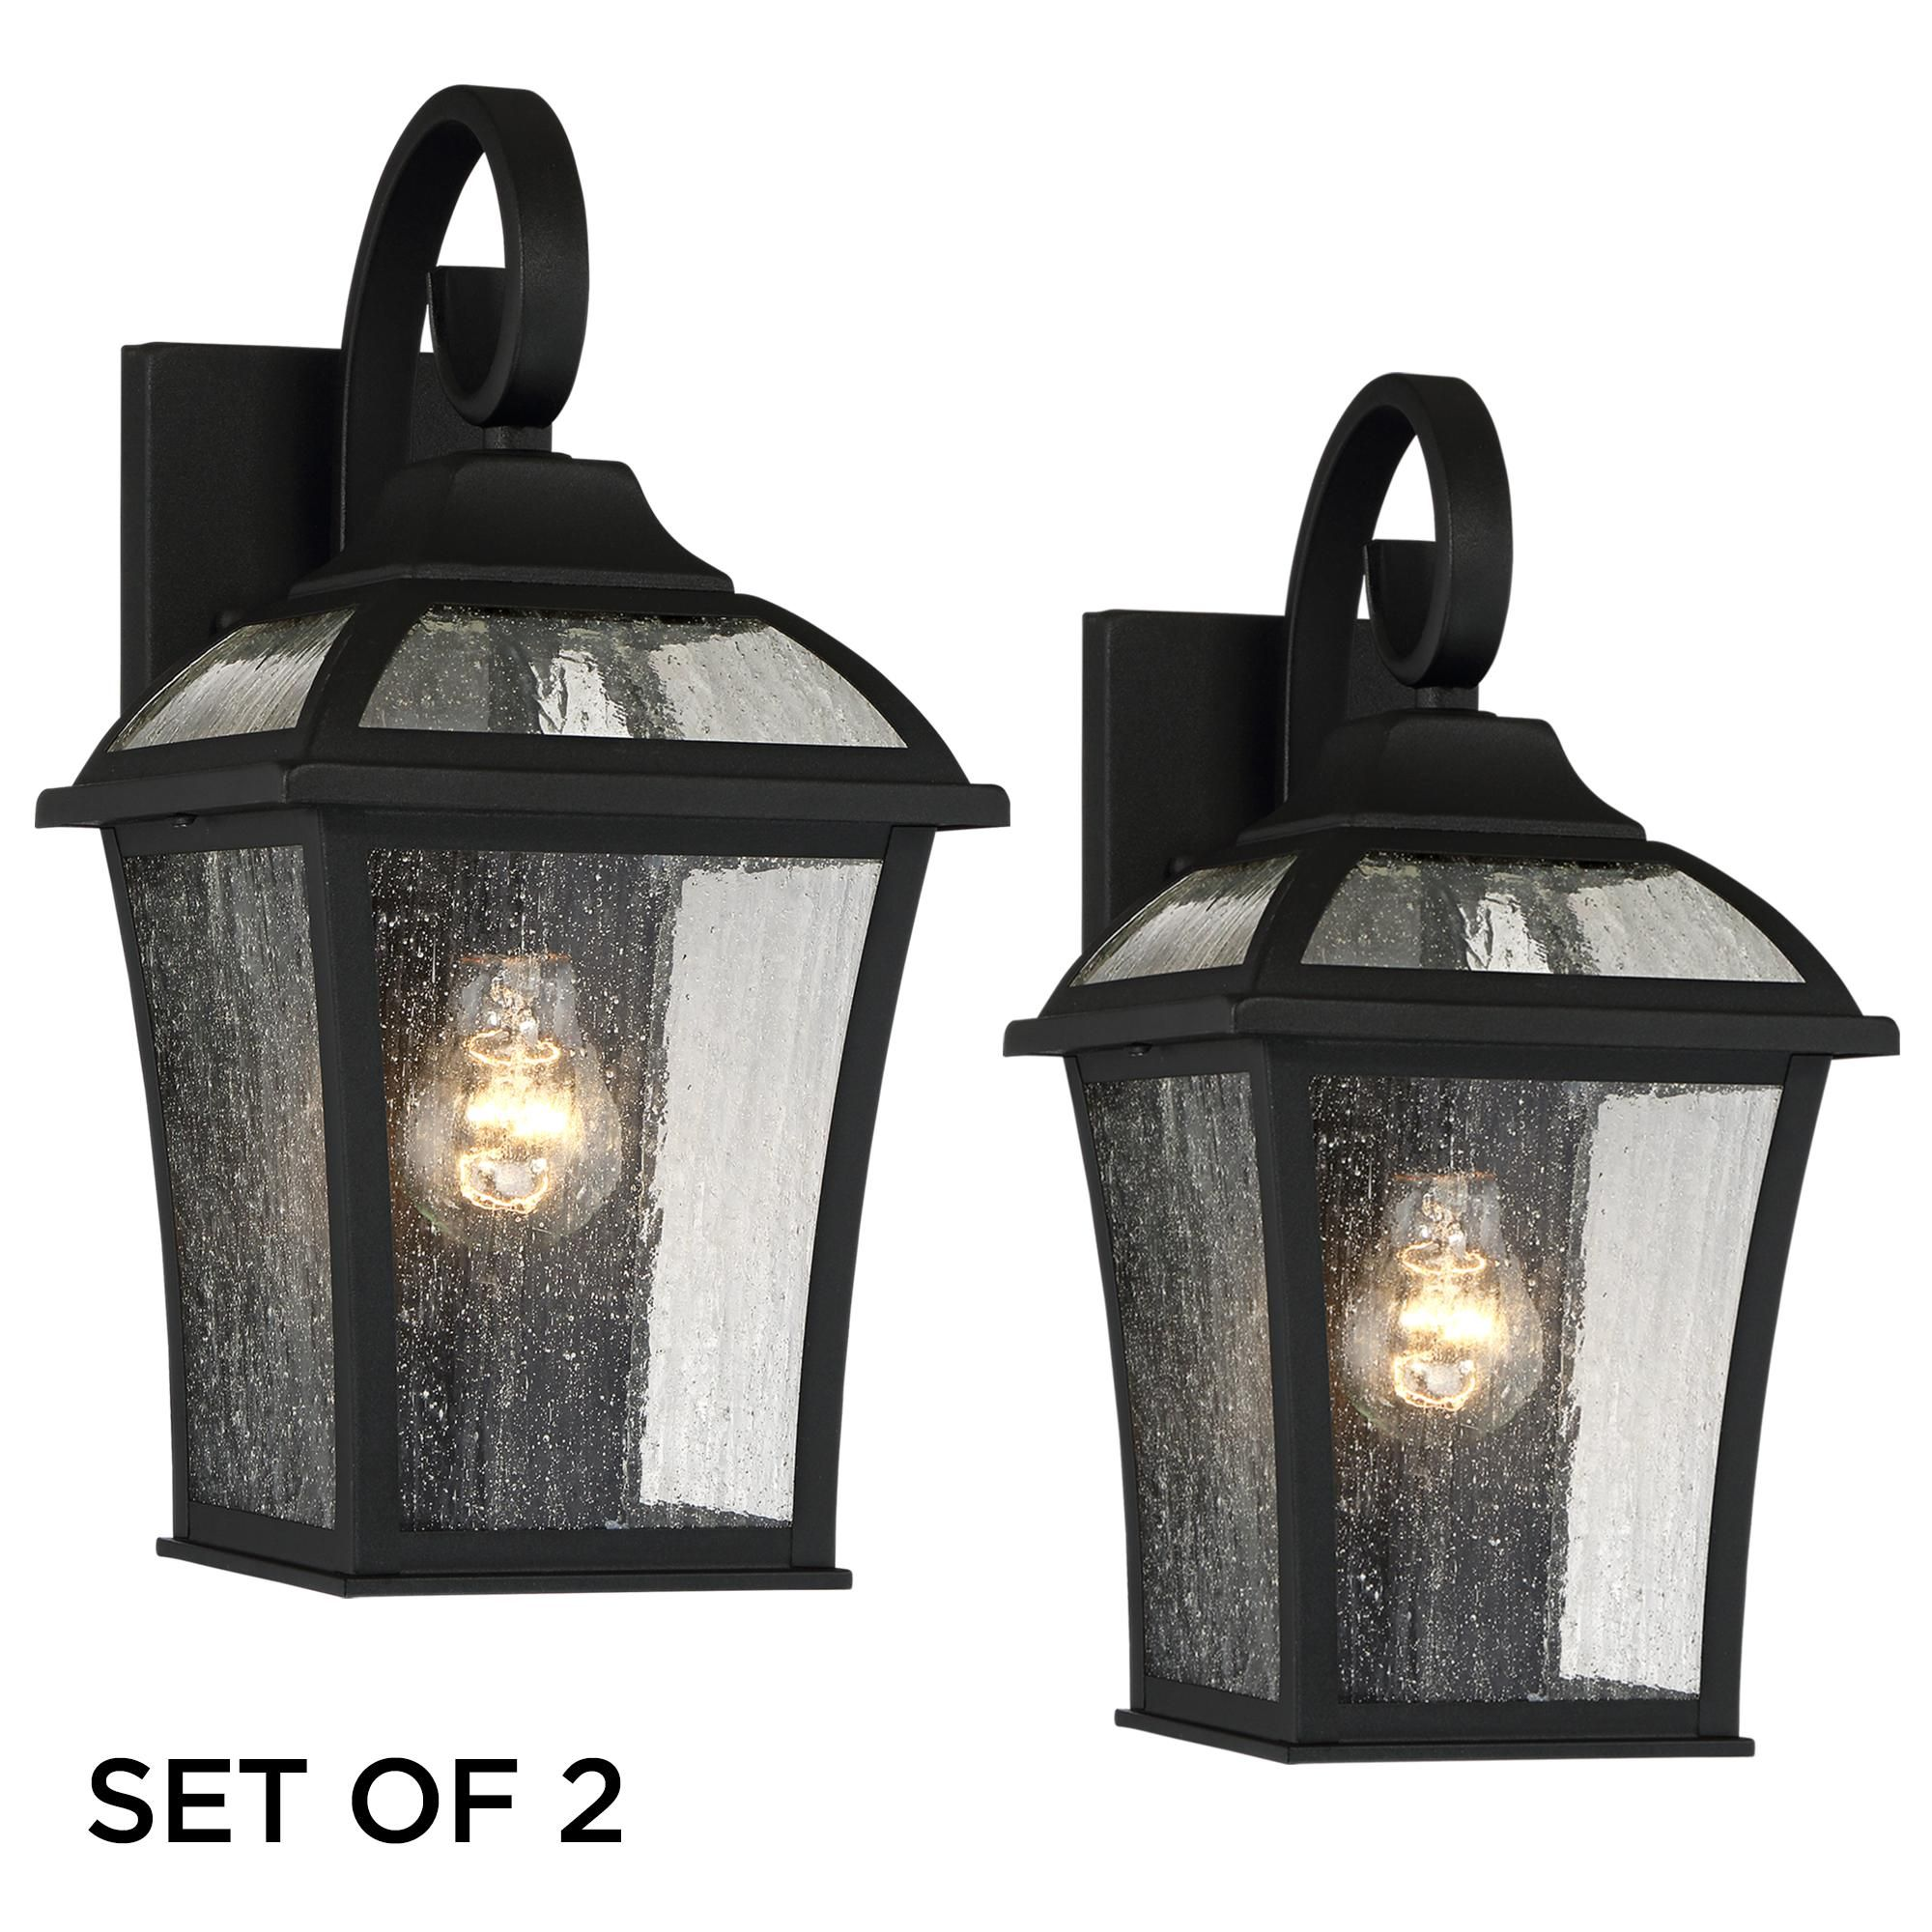 Set Of 2 Mosconi 15 High Black Outdoor Wall Lights 1n896